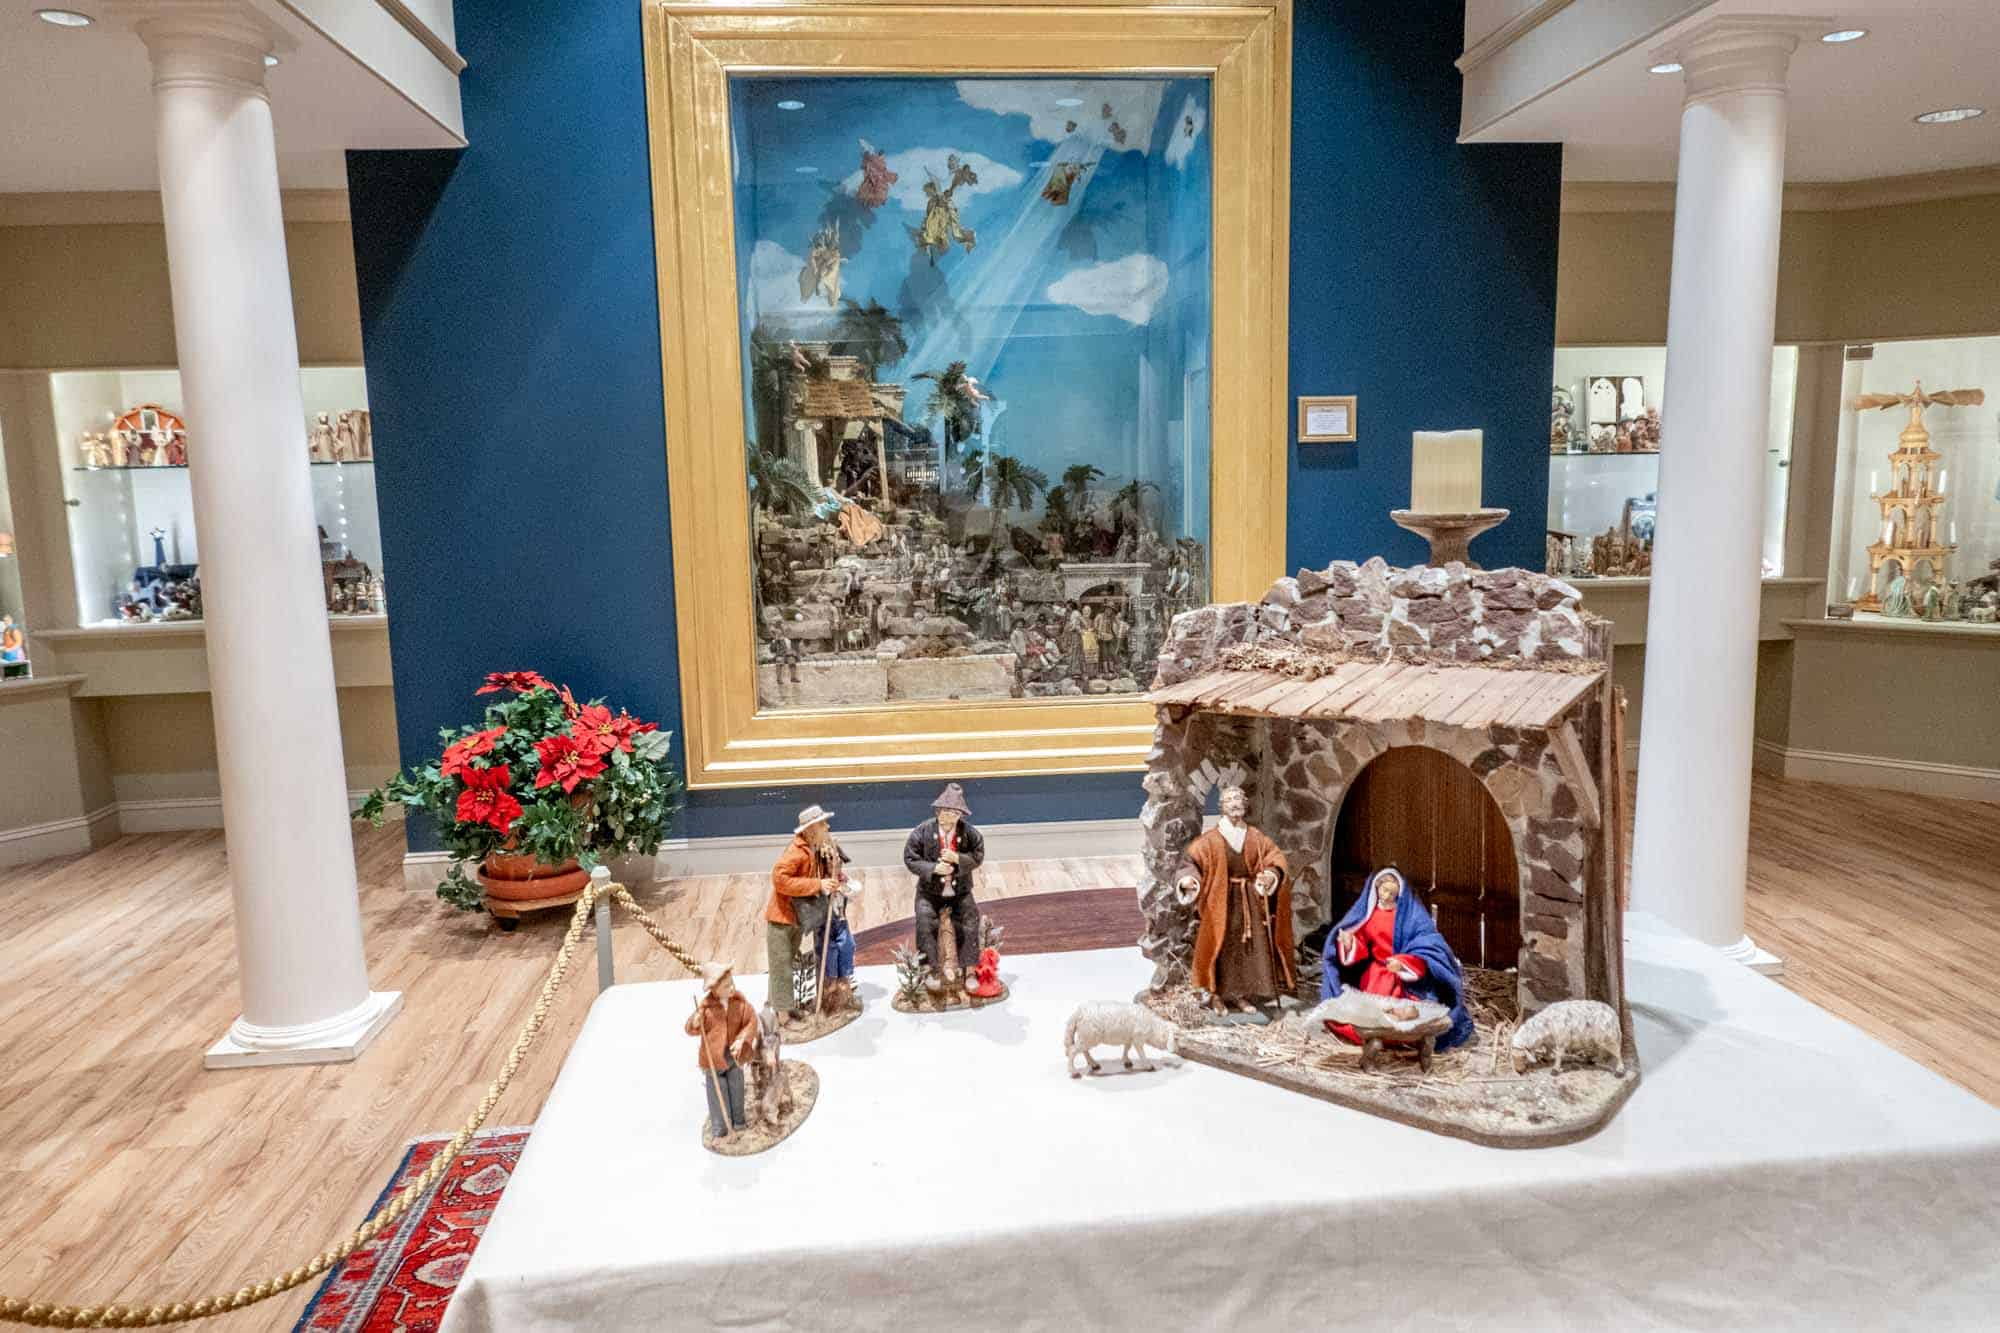 A creche collection of figurines from around the world